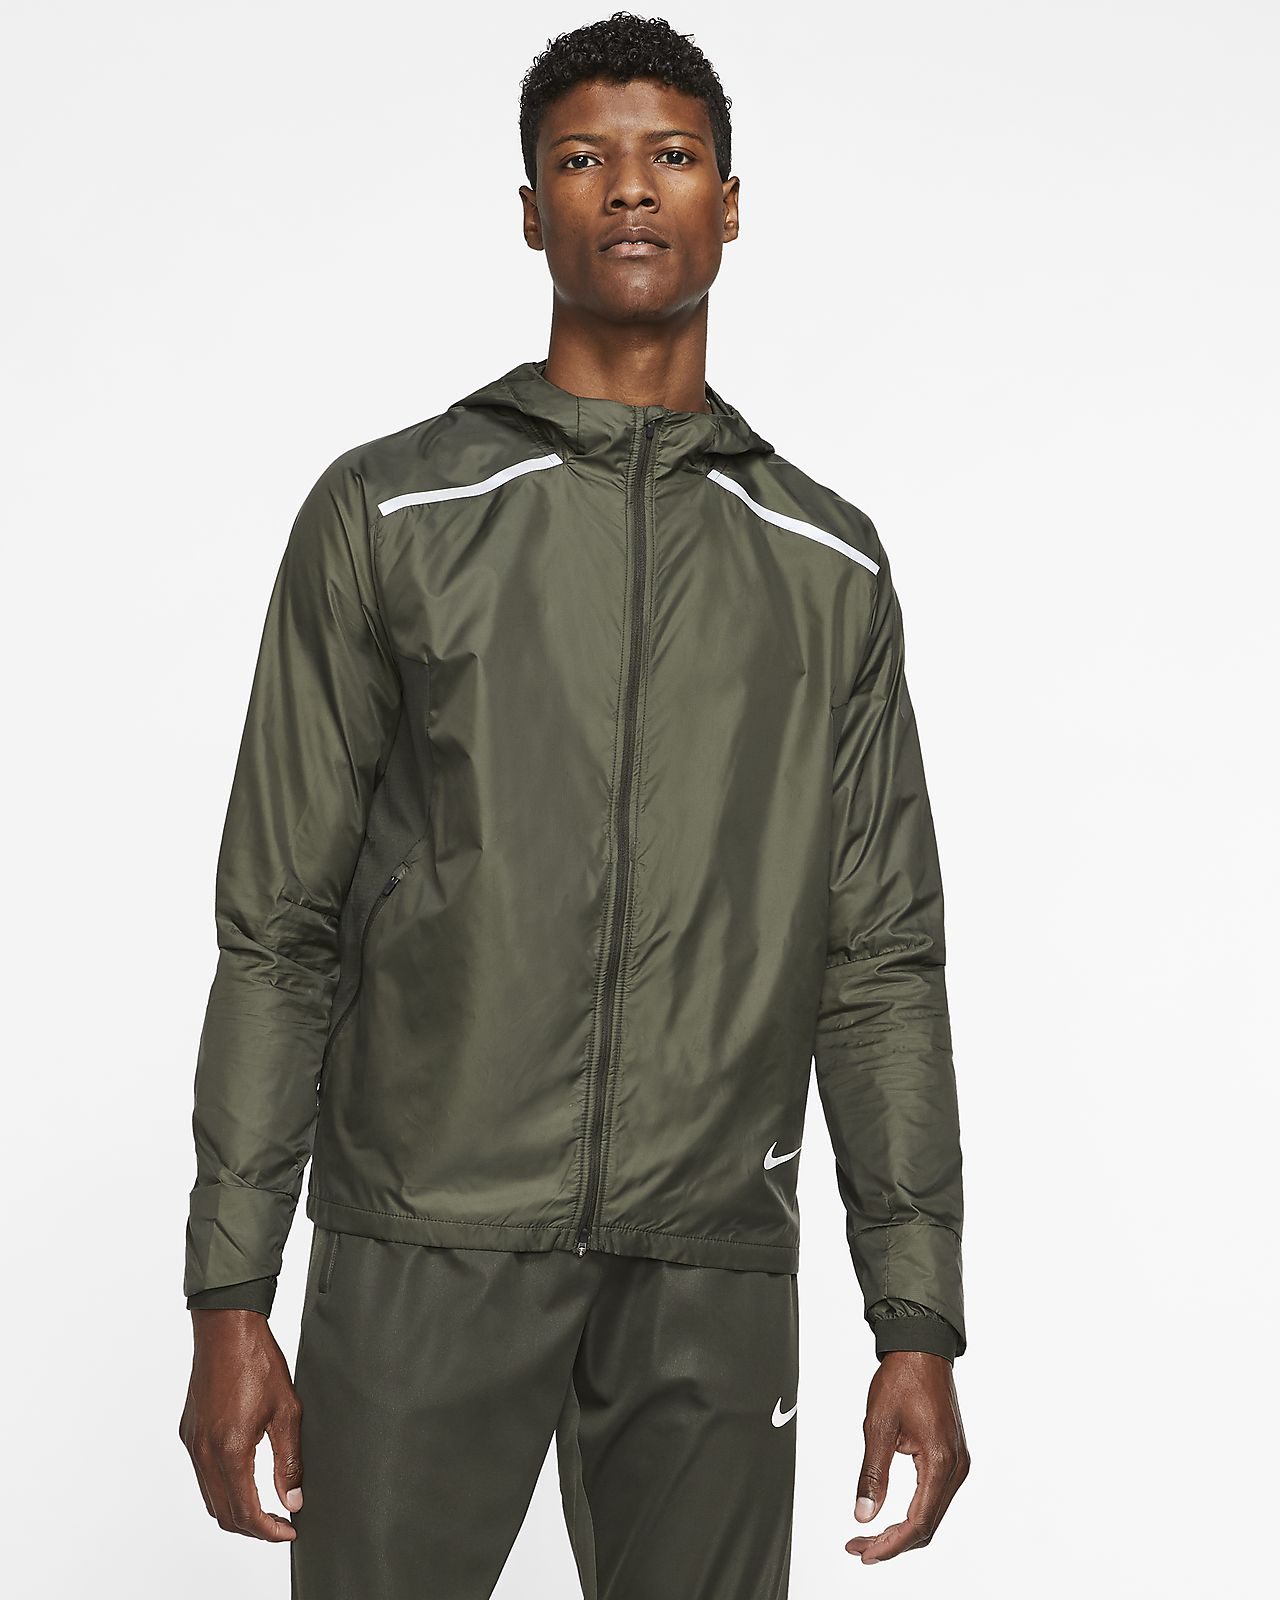 Nike Repel Men's Hooded Running Jacket